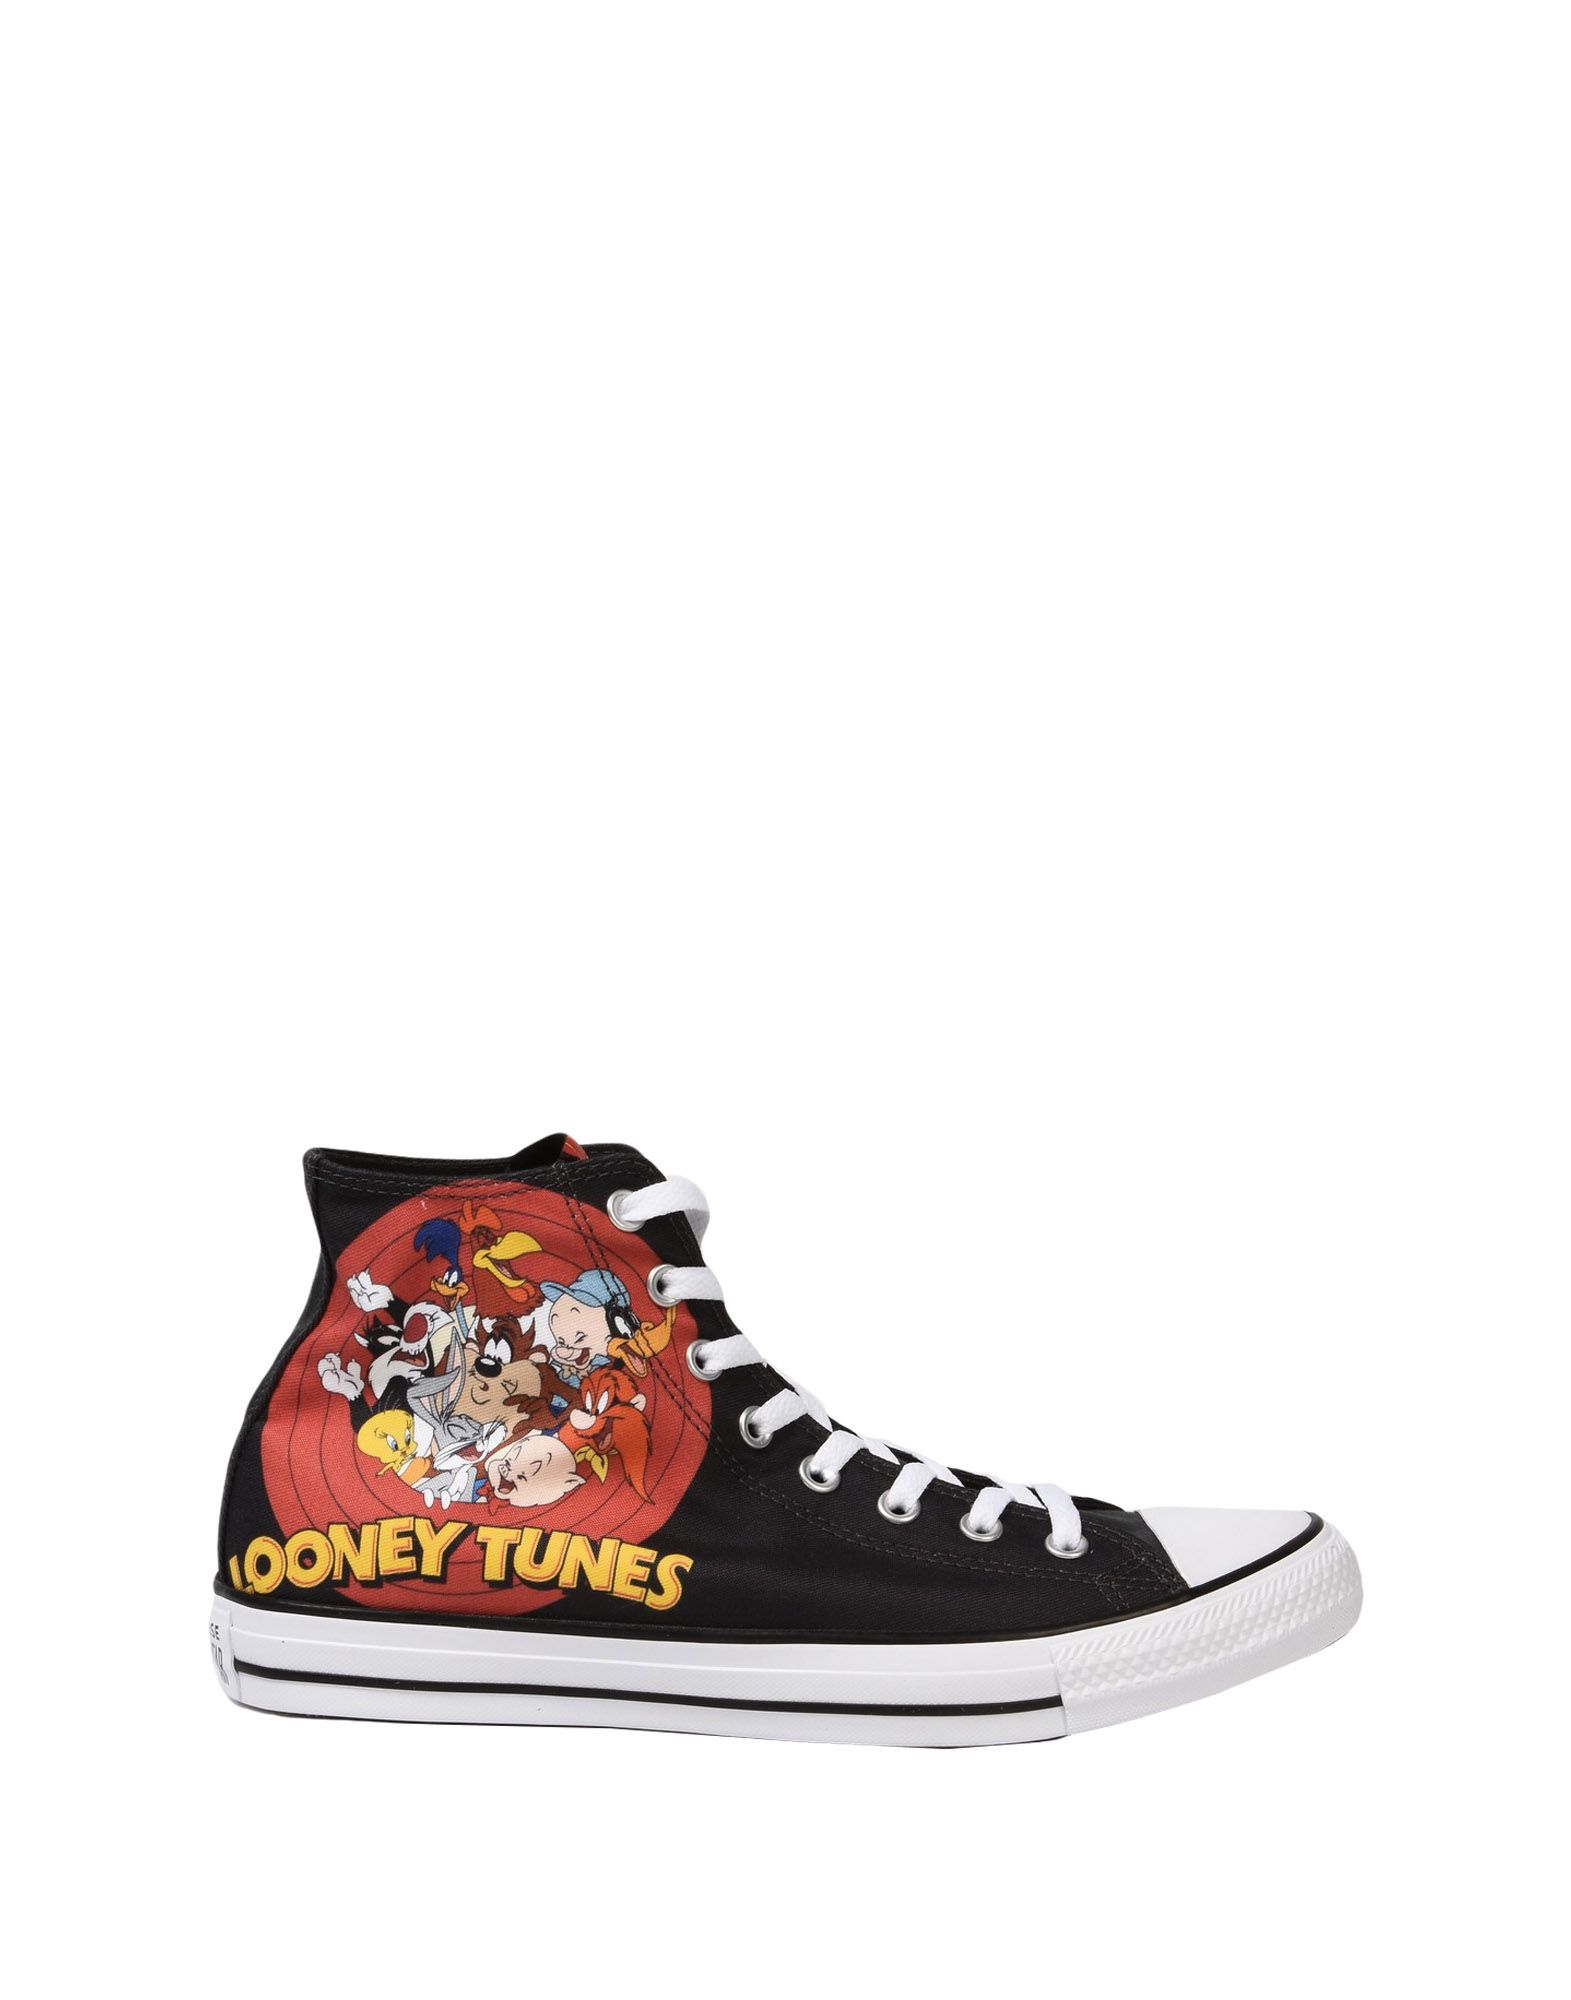 Sneakers Converse All Star Chuck Taylor All Star Hi Looney Tunes - Uomo - 11512277TW